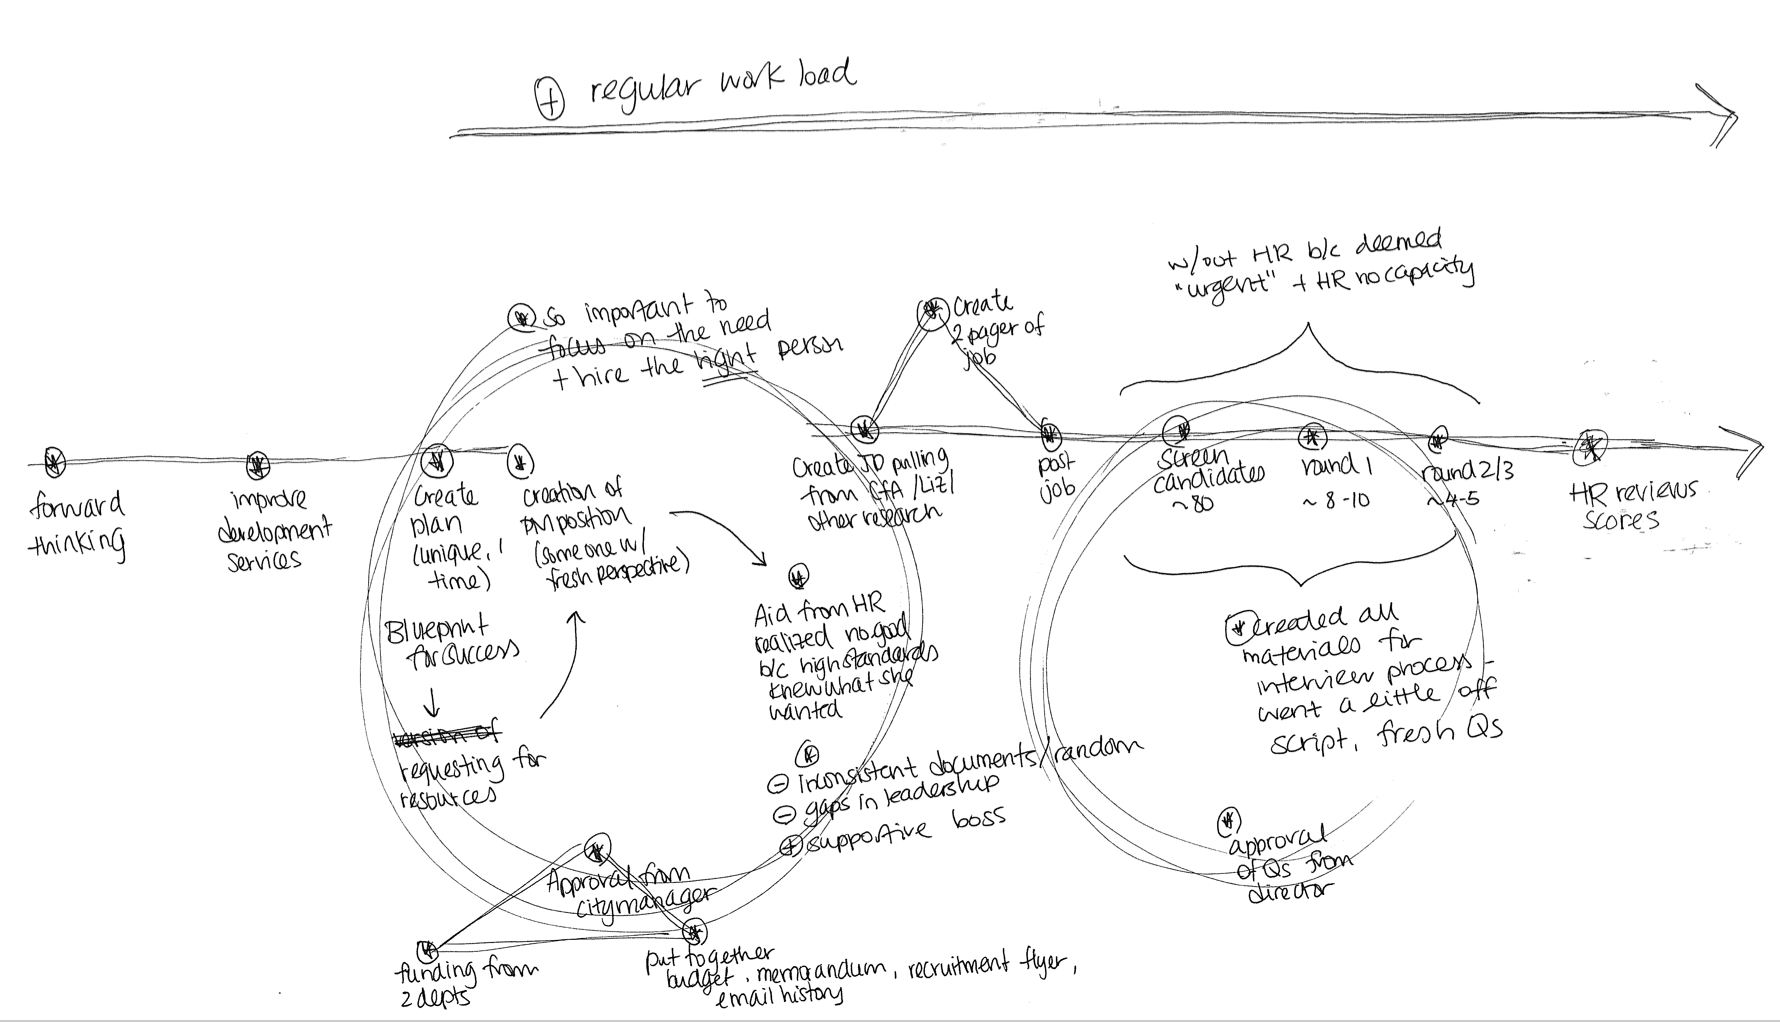 Mapping research after interviews